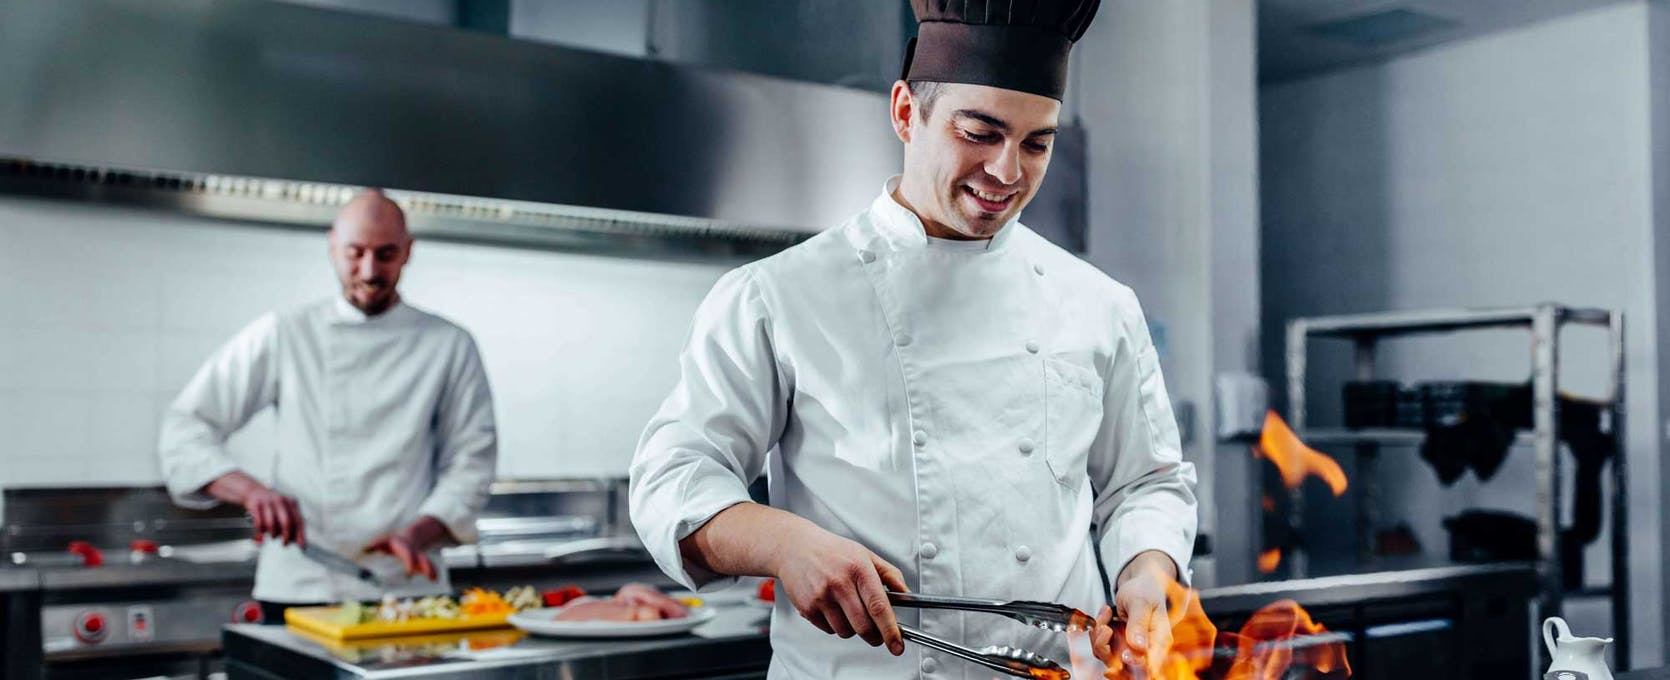 Chefs prepare meals for patron at a franchise restaurant